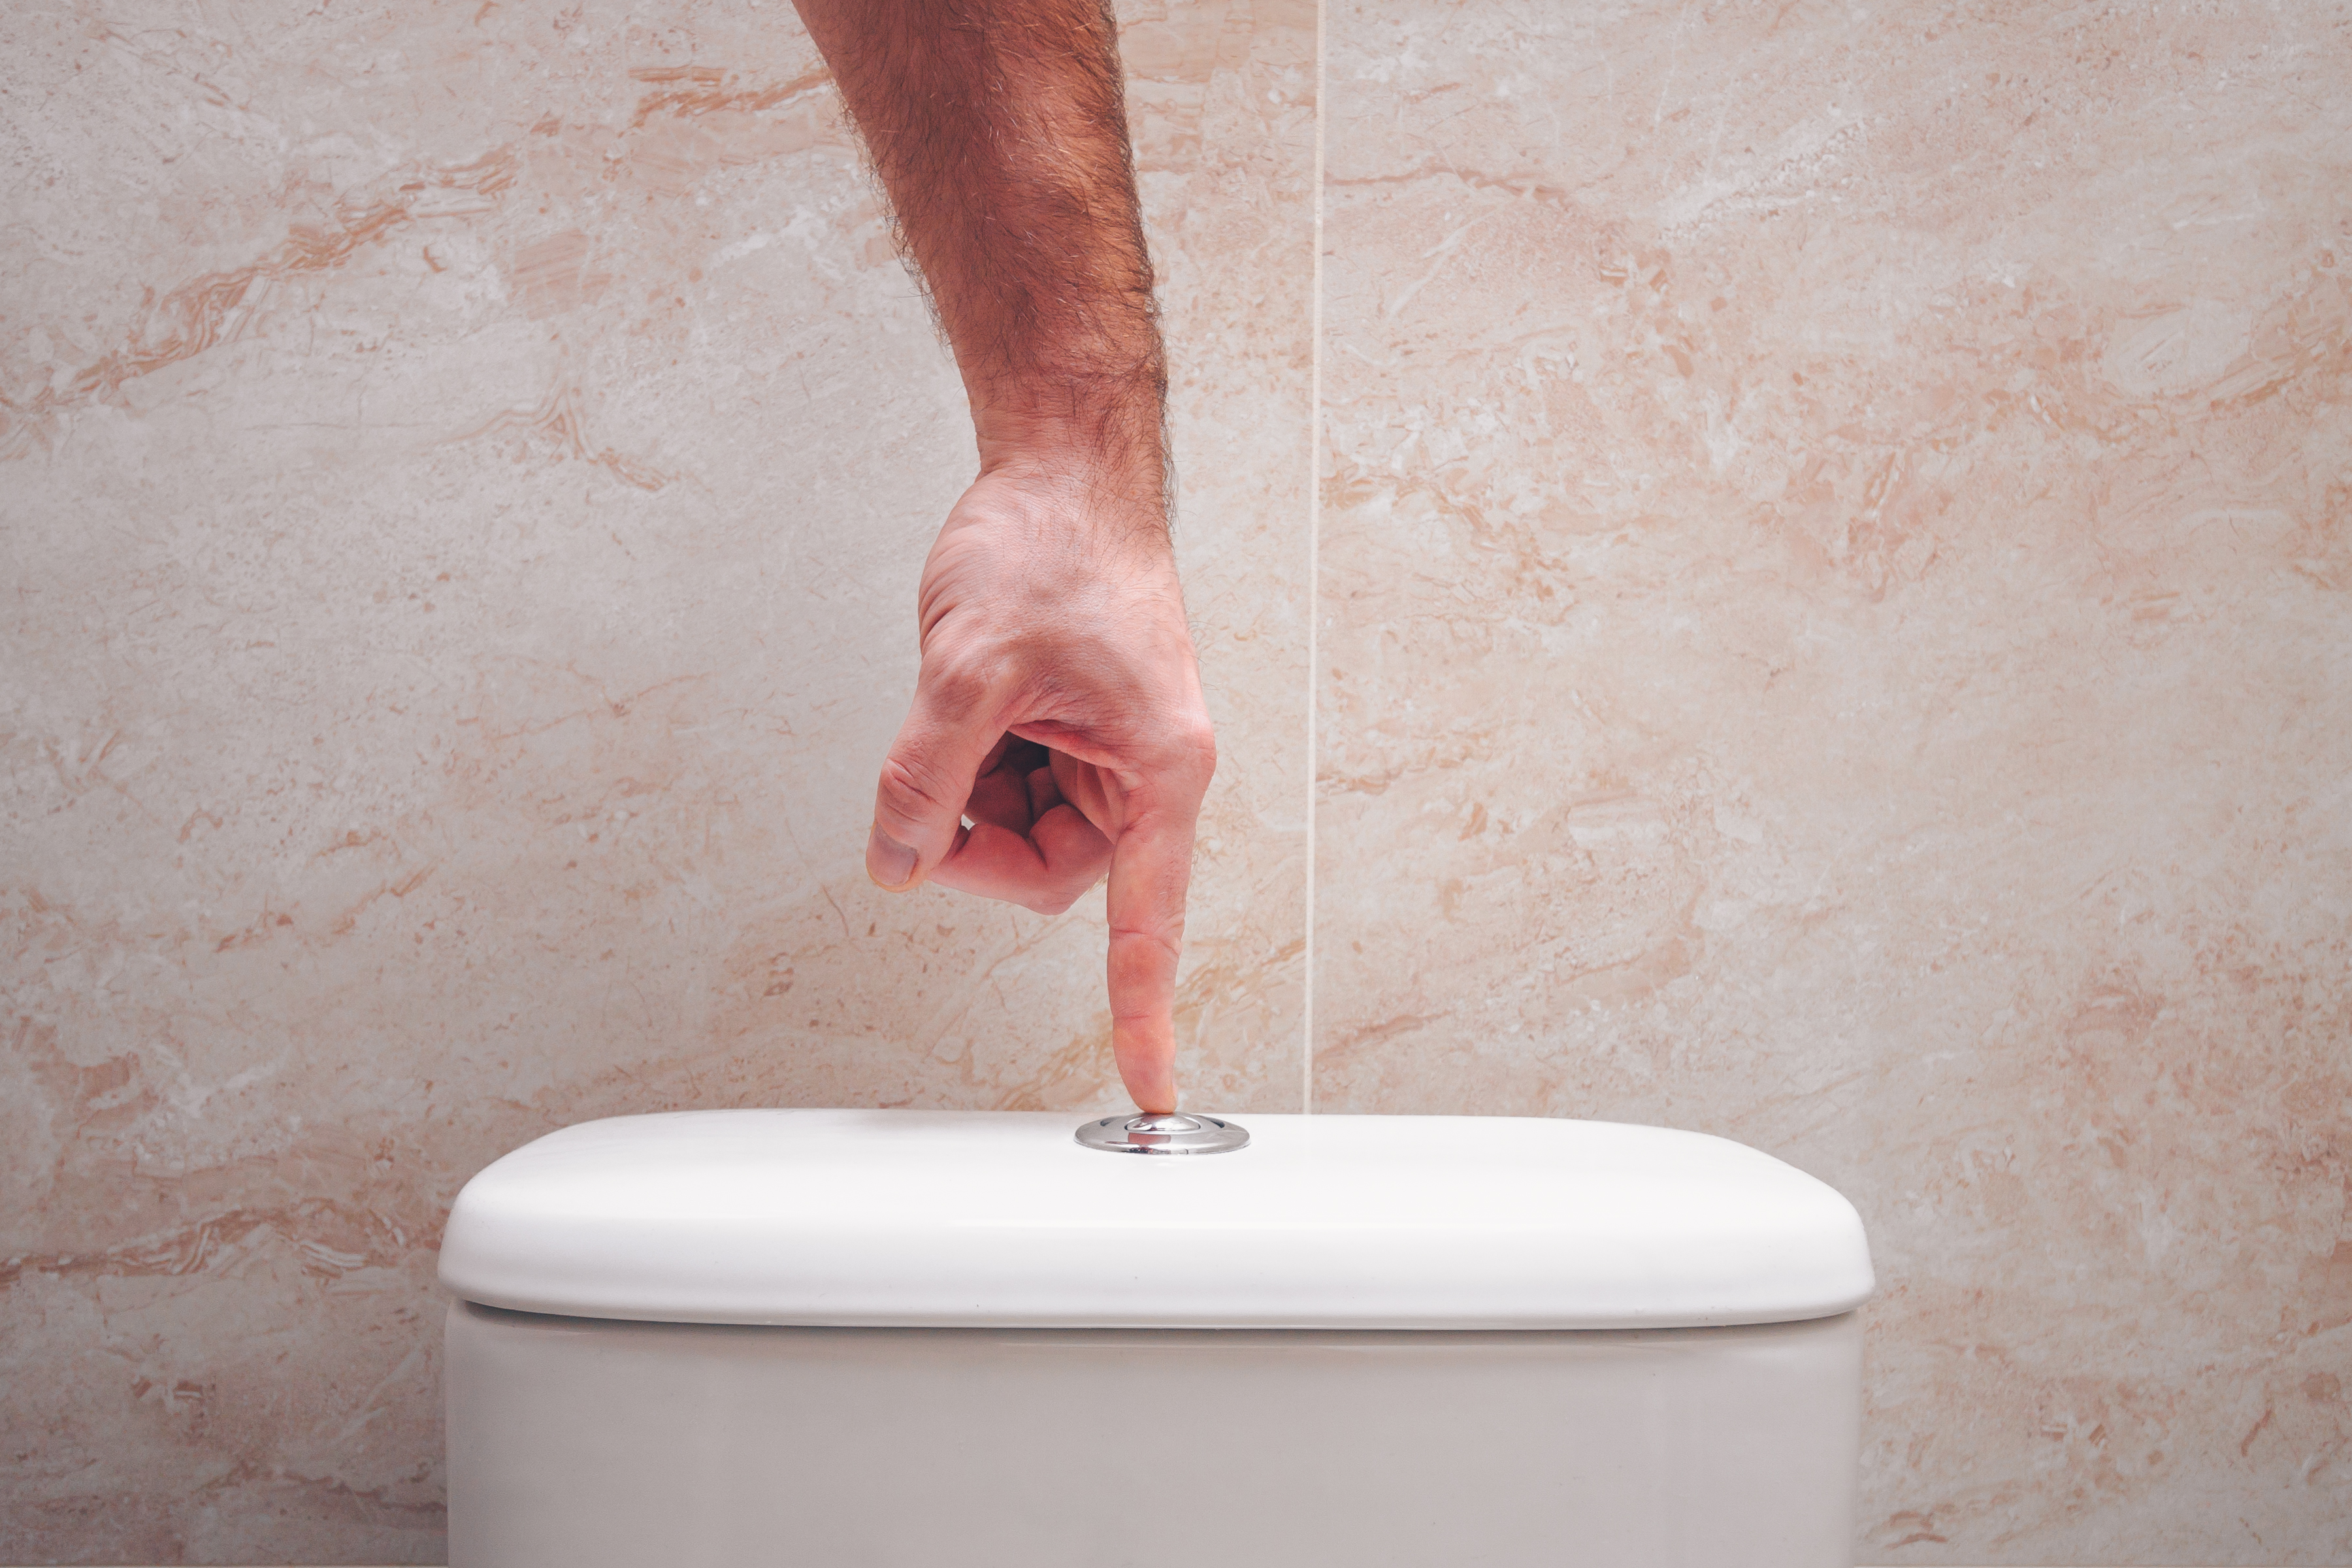 Hand pressing the flush button on the toilet bowl.